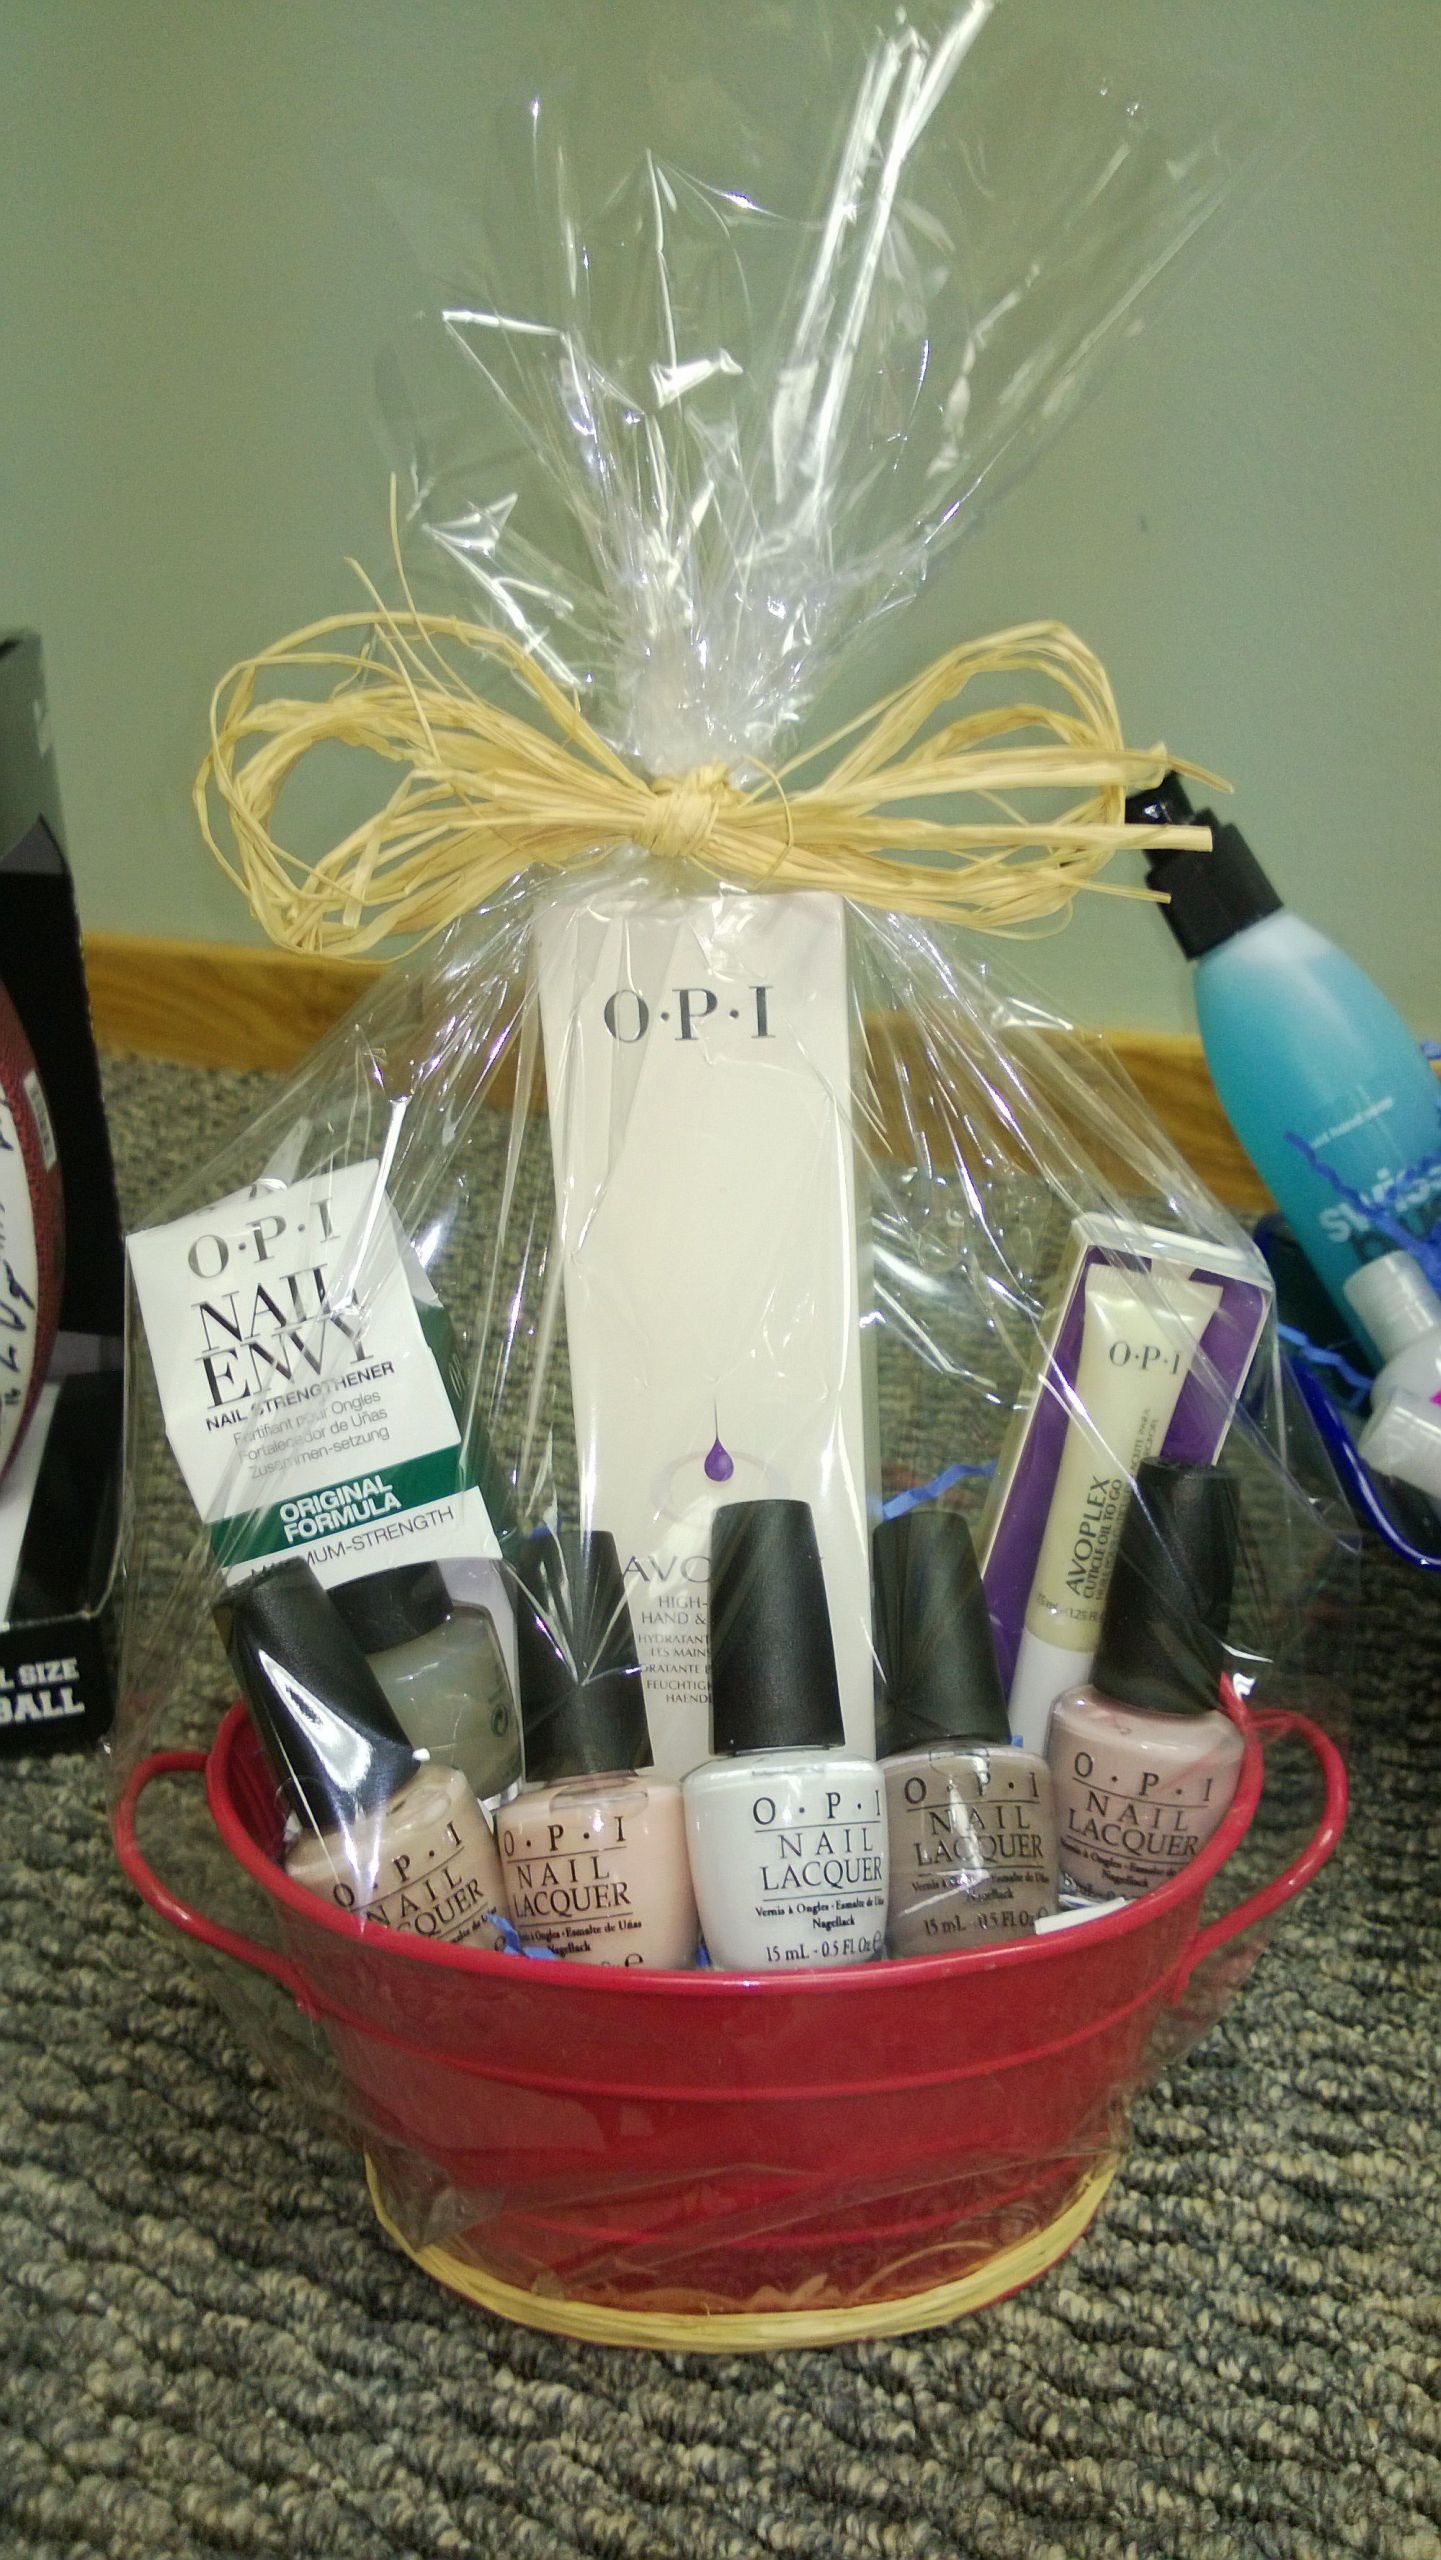 Gift Basket Ideas For Silent Auction Fundraiser  Silent Auction OPI generously donated hundreds in